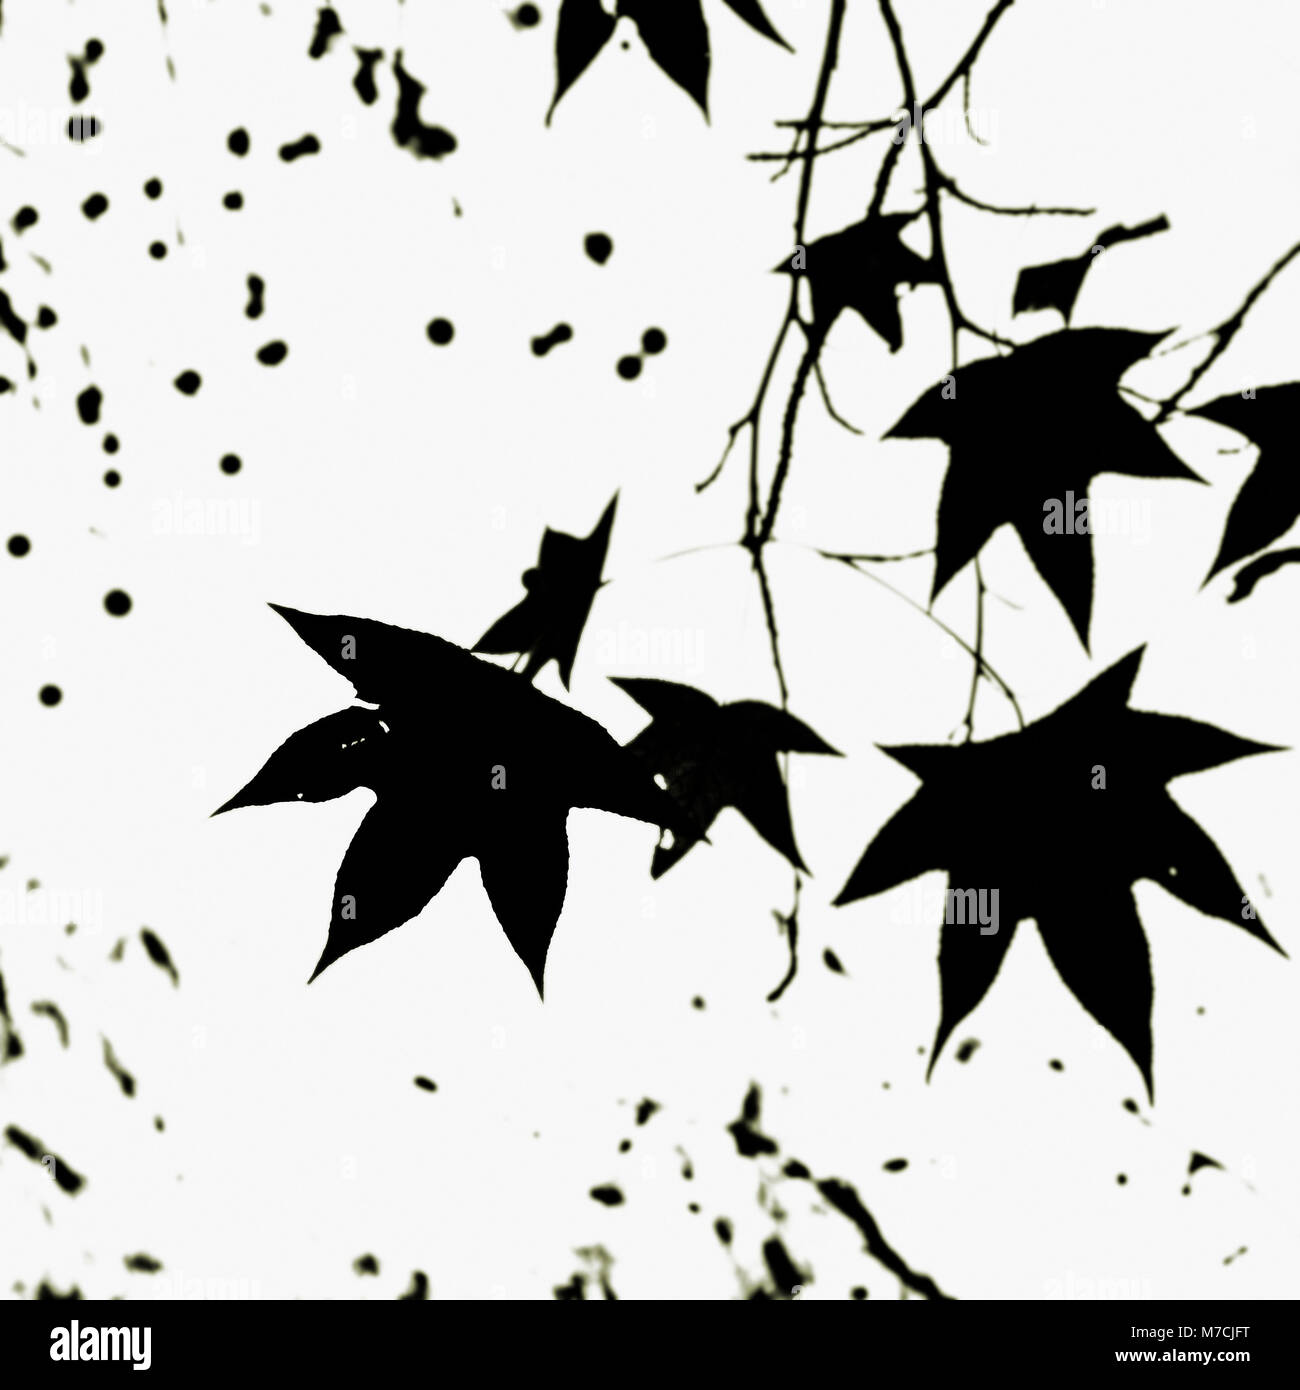 Maple leaves on a tree - Stock Image